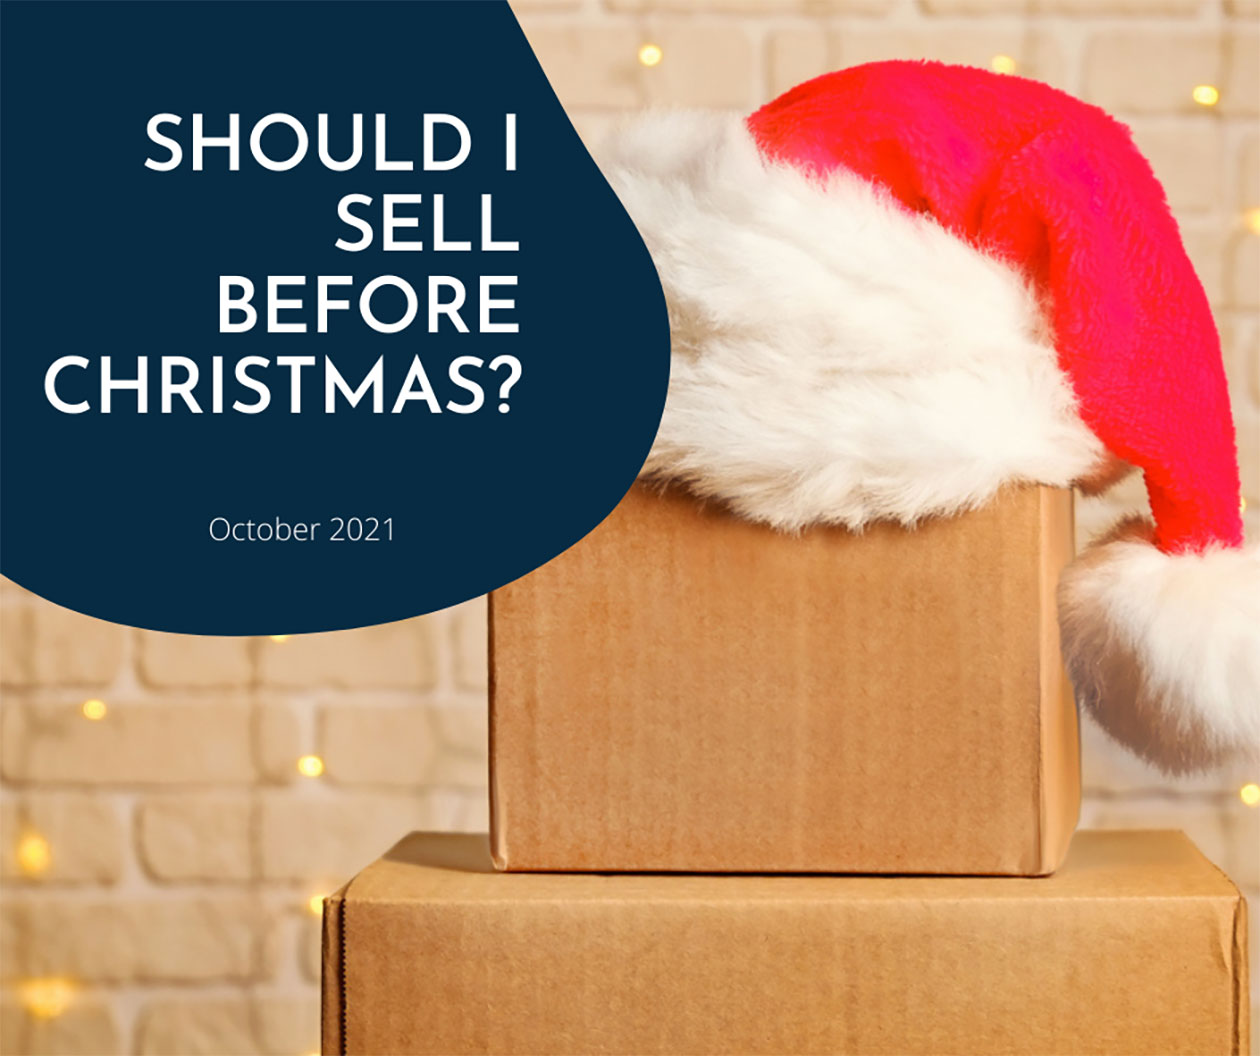 Want to sell Before Christmas? It'll take organisation and focus but there's still time.